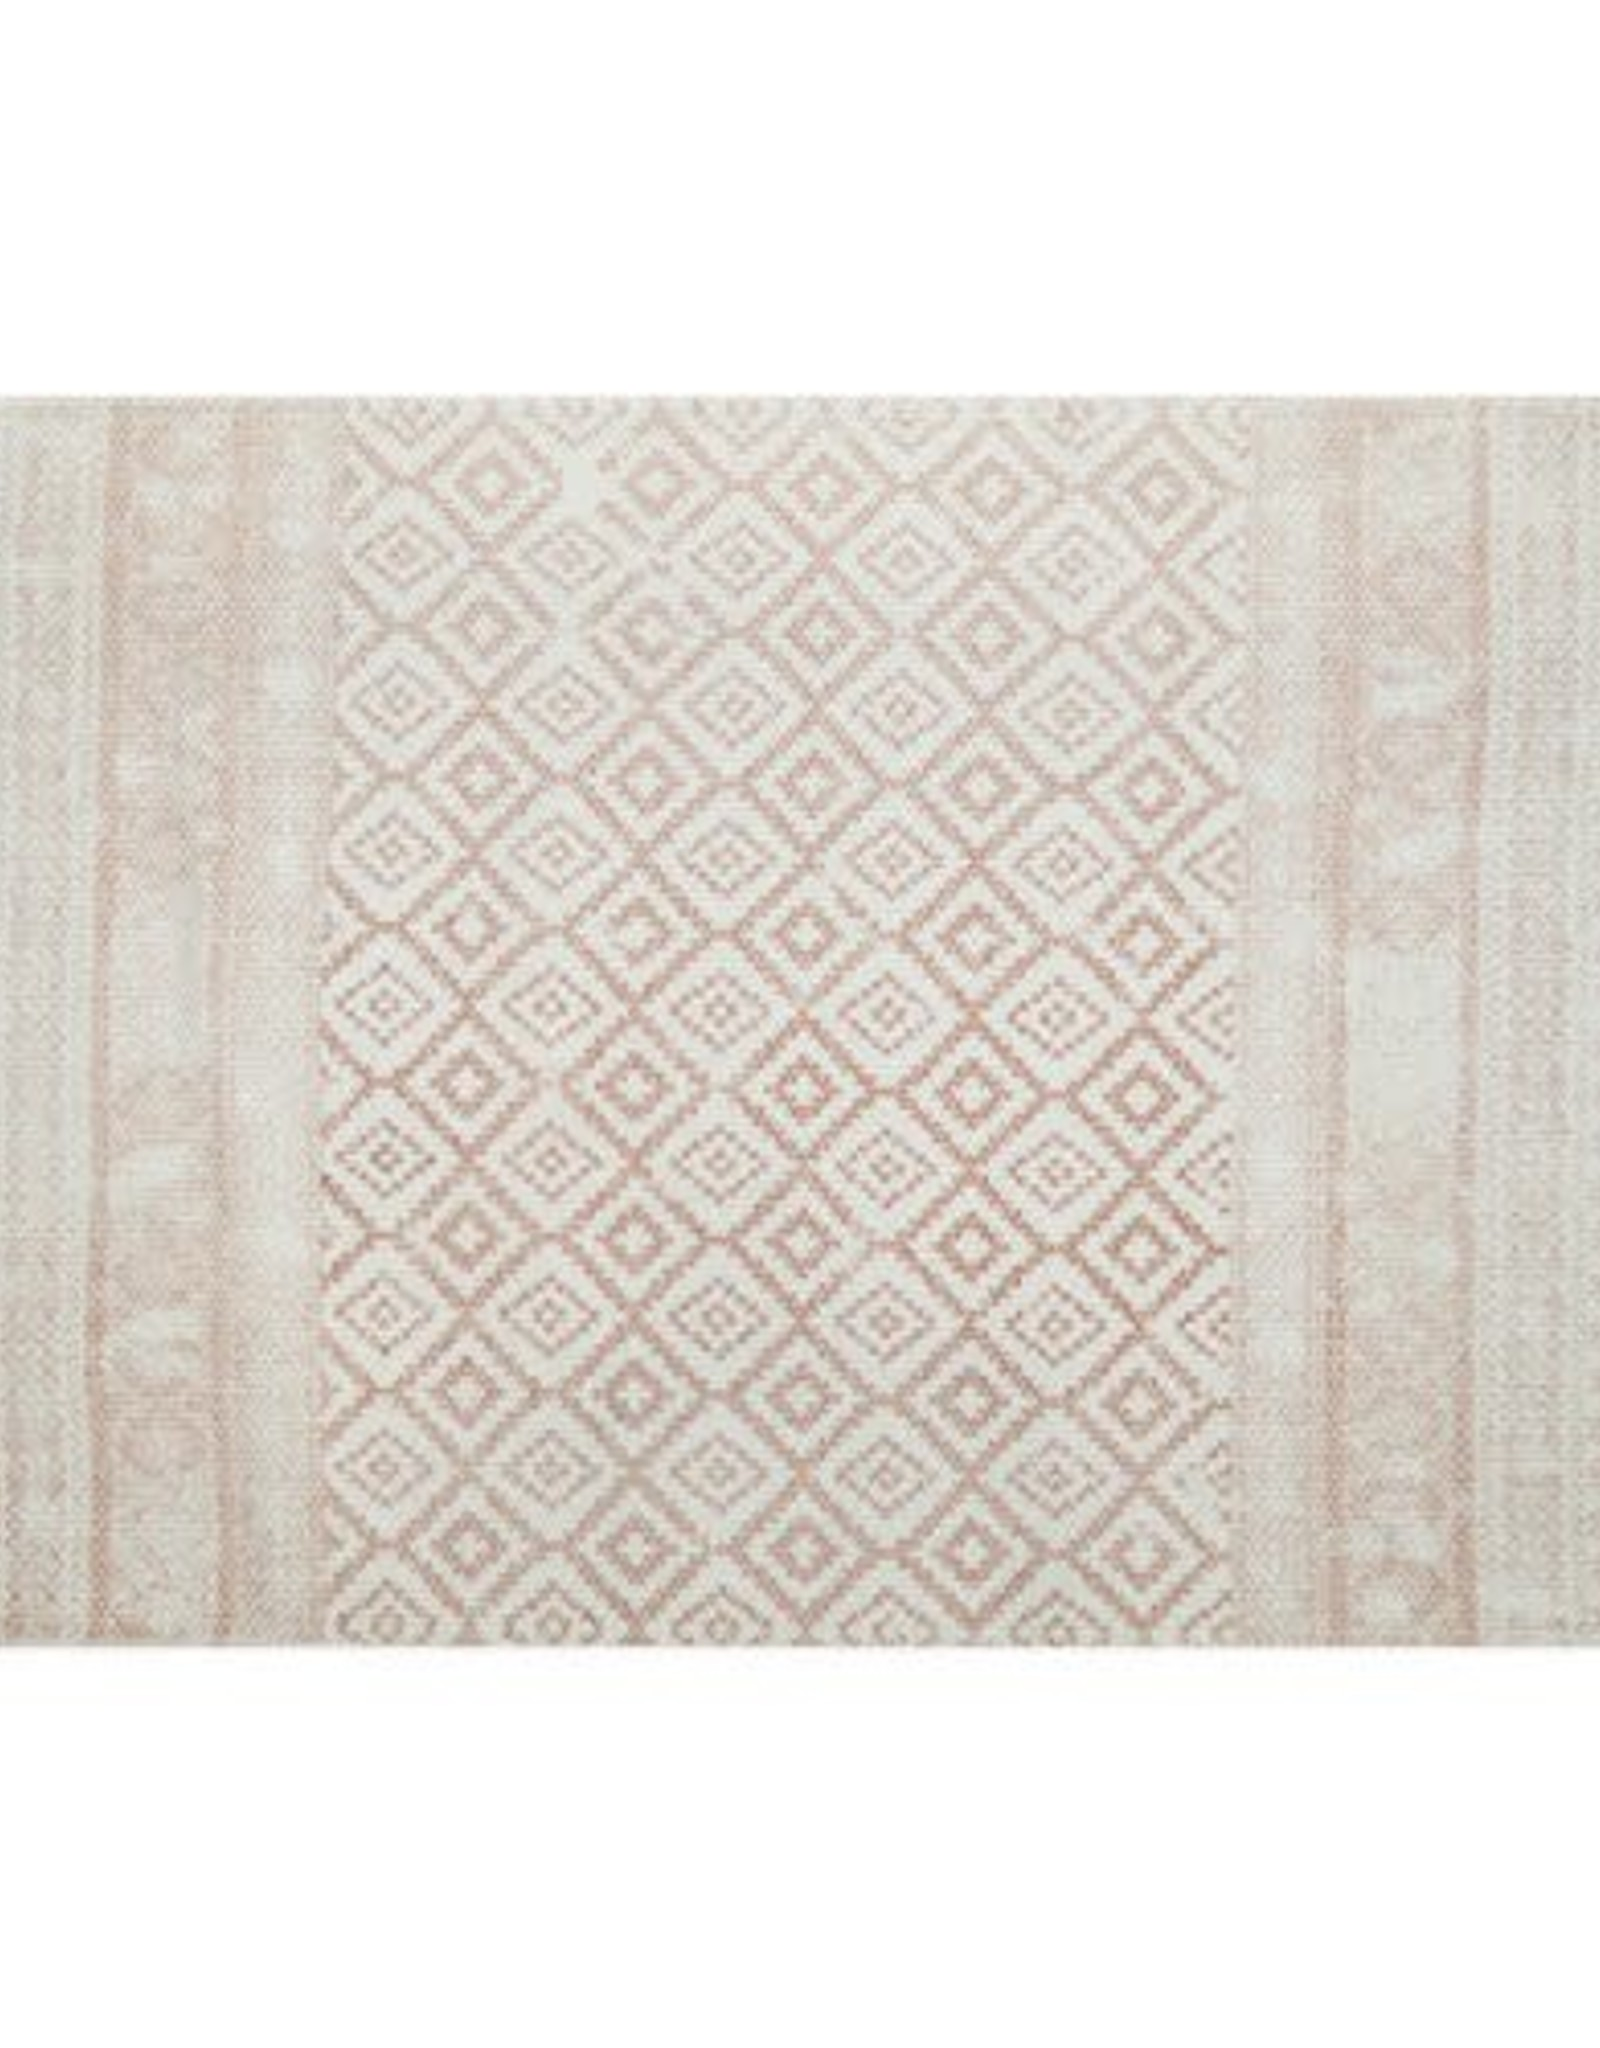 Tapis 2x 3 - Slavia rose naturel